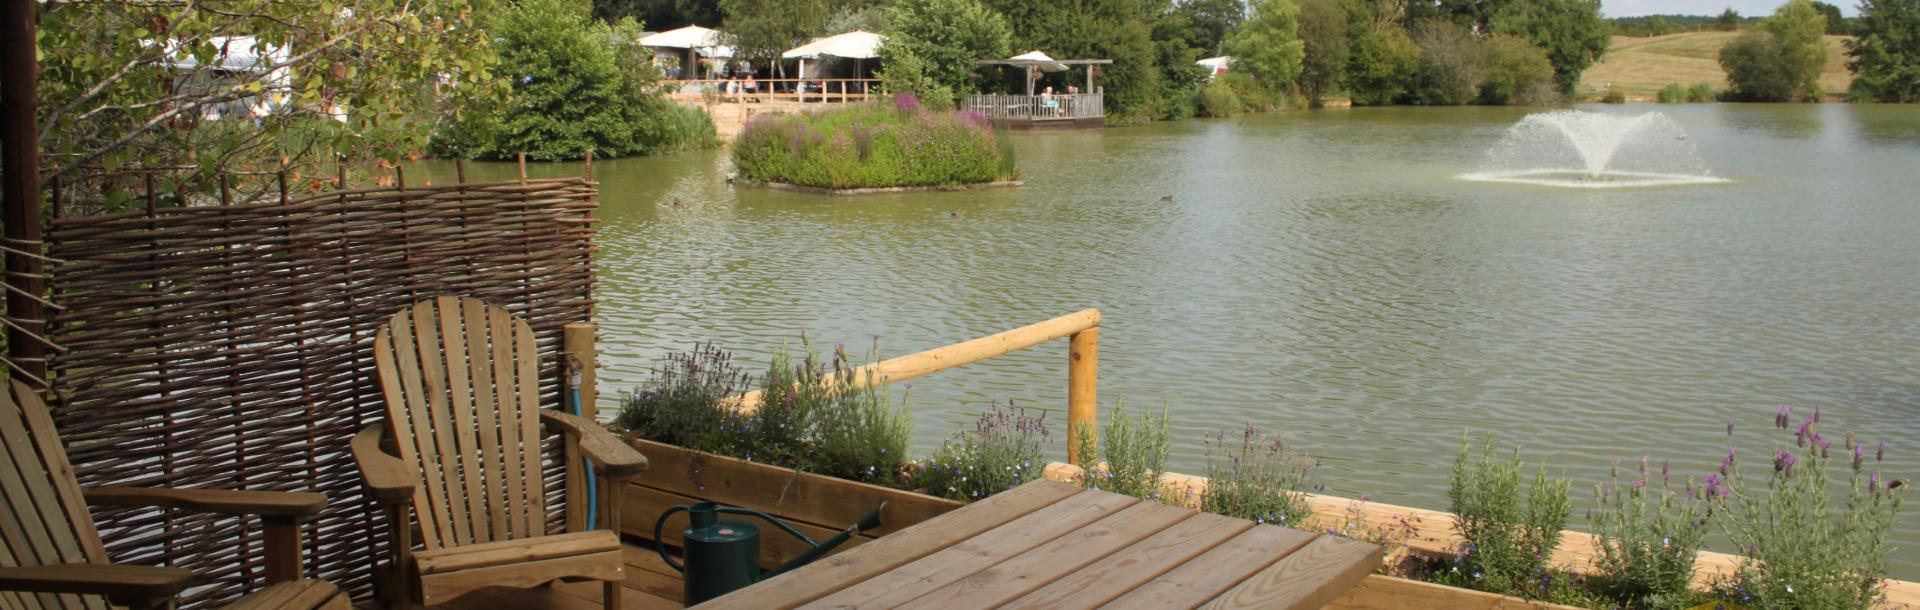 tente safari lodge camping